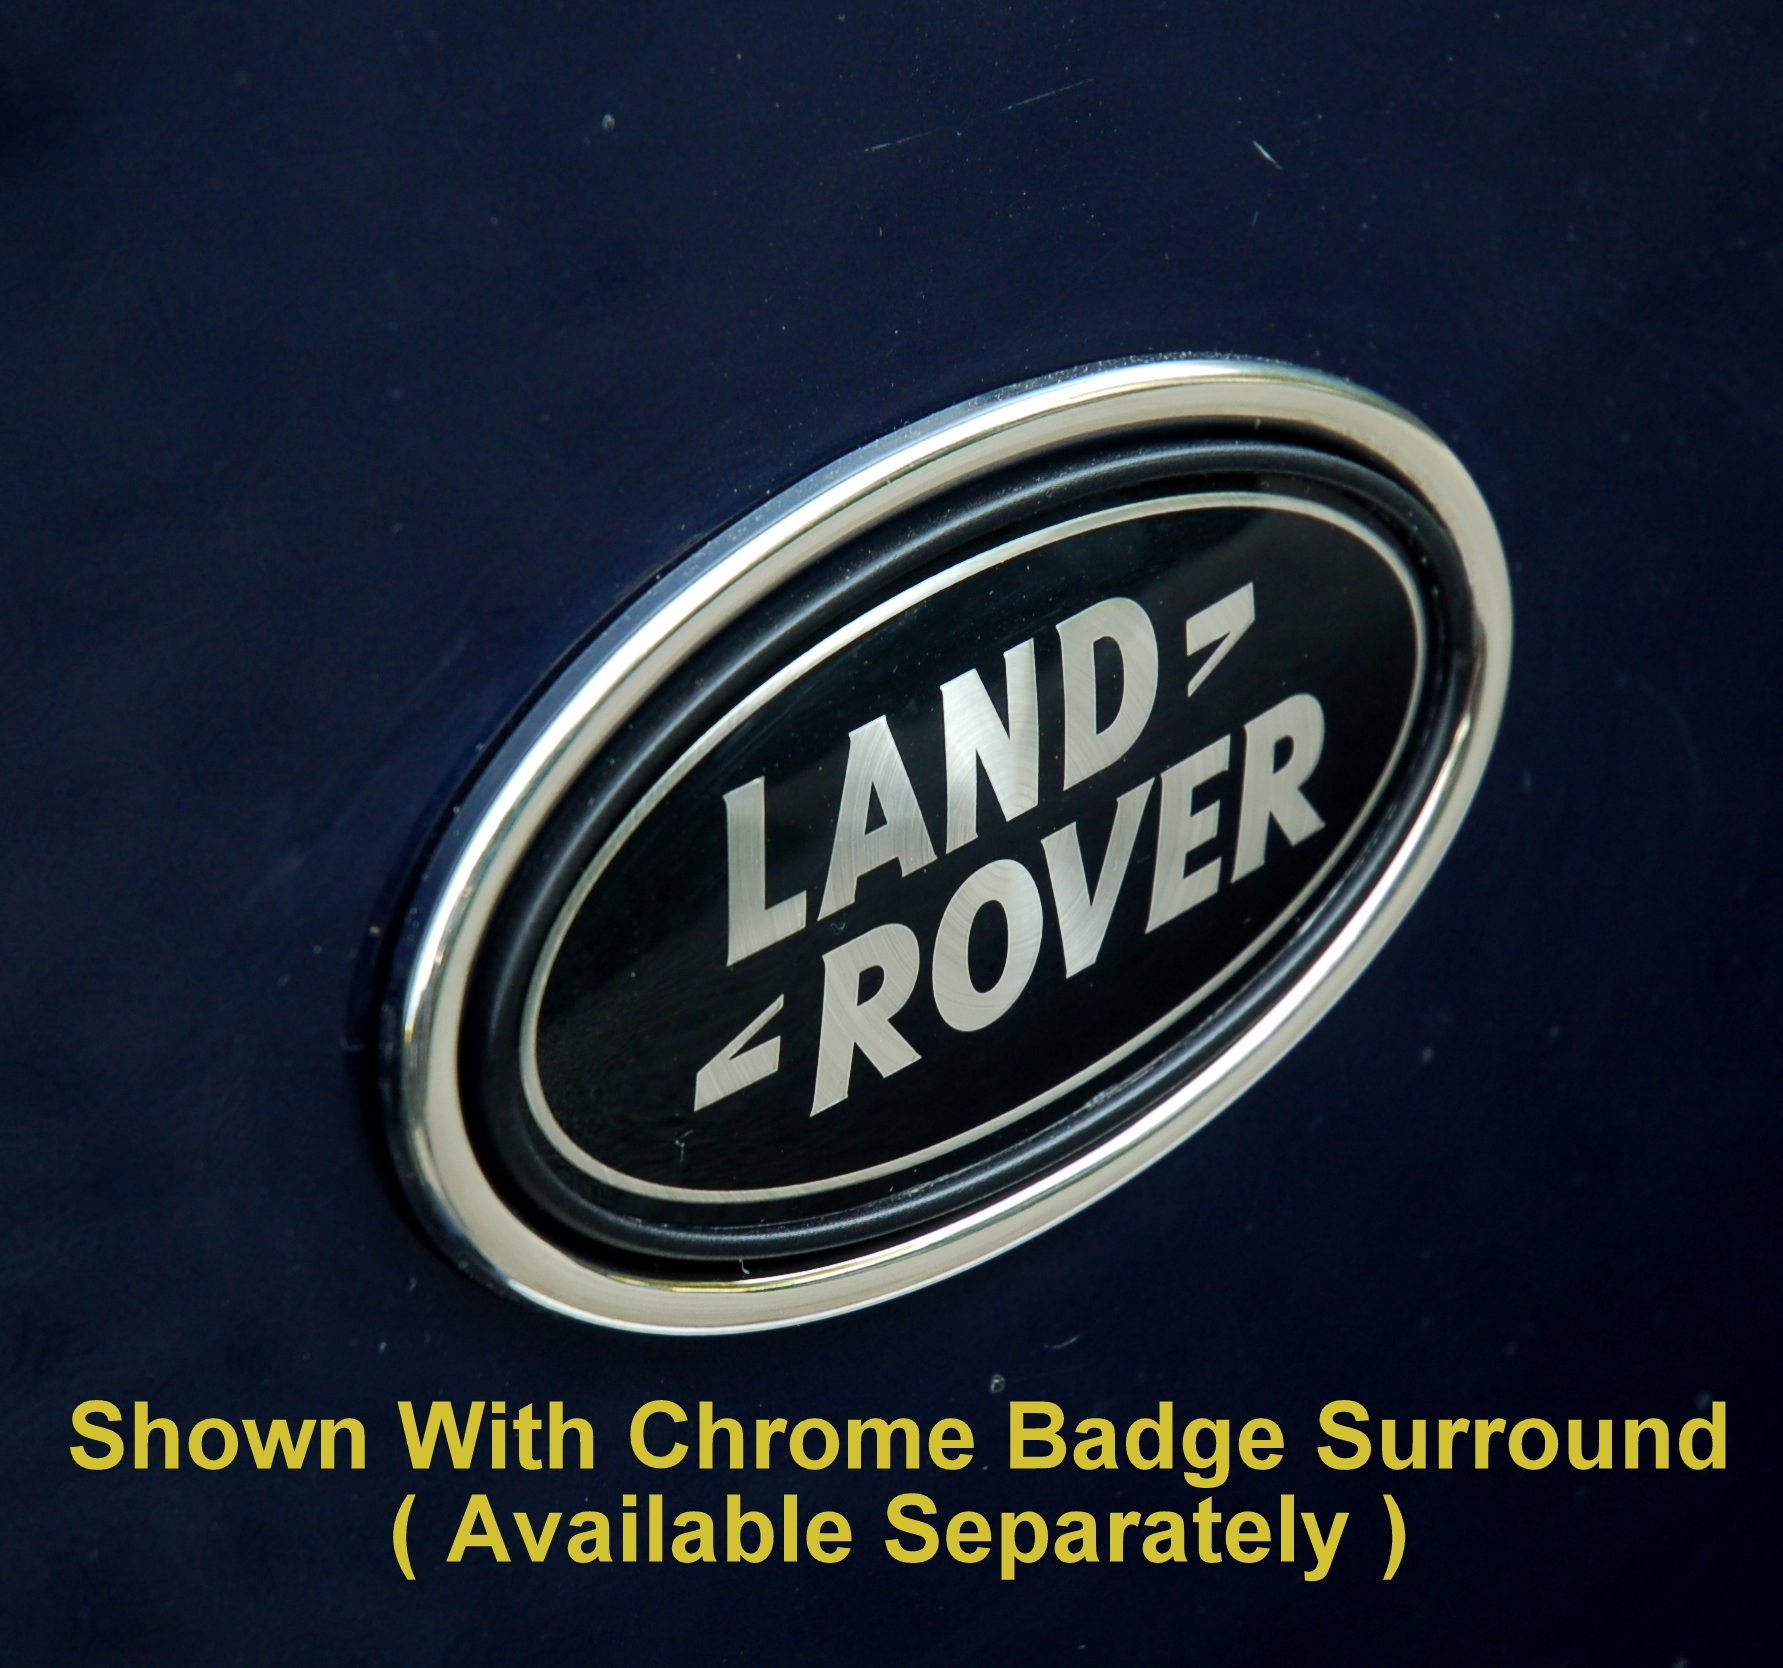 Purchase Used 2003 Land Rover Discovery Se Se 7 Sport: Range Rover P38 BLACK+SILVER Oval Rear LAND ROVER Badge